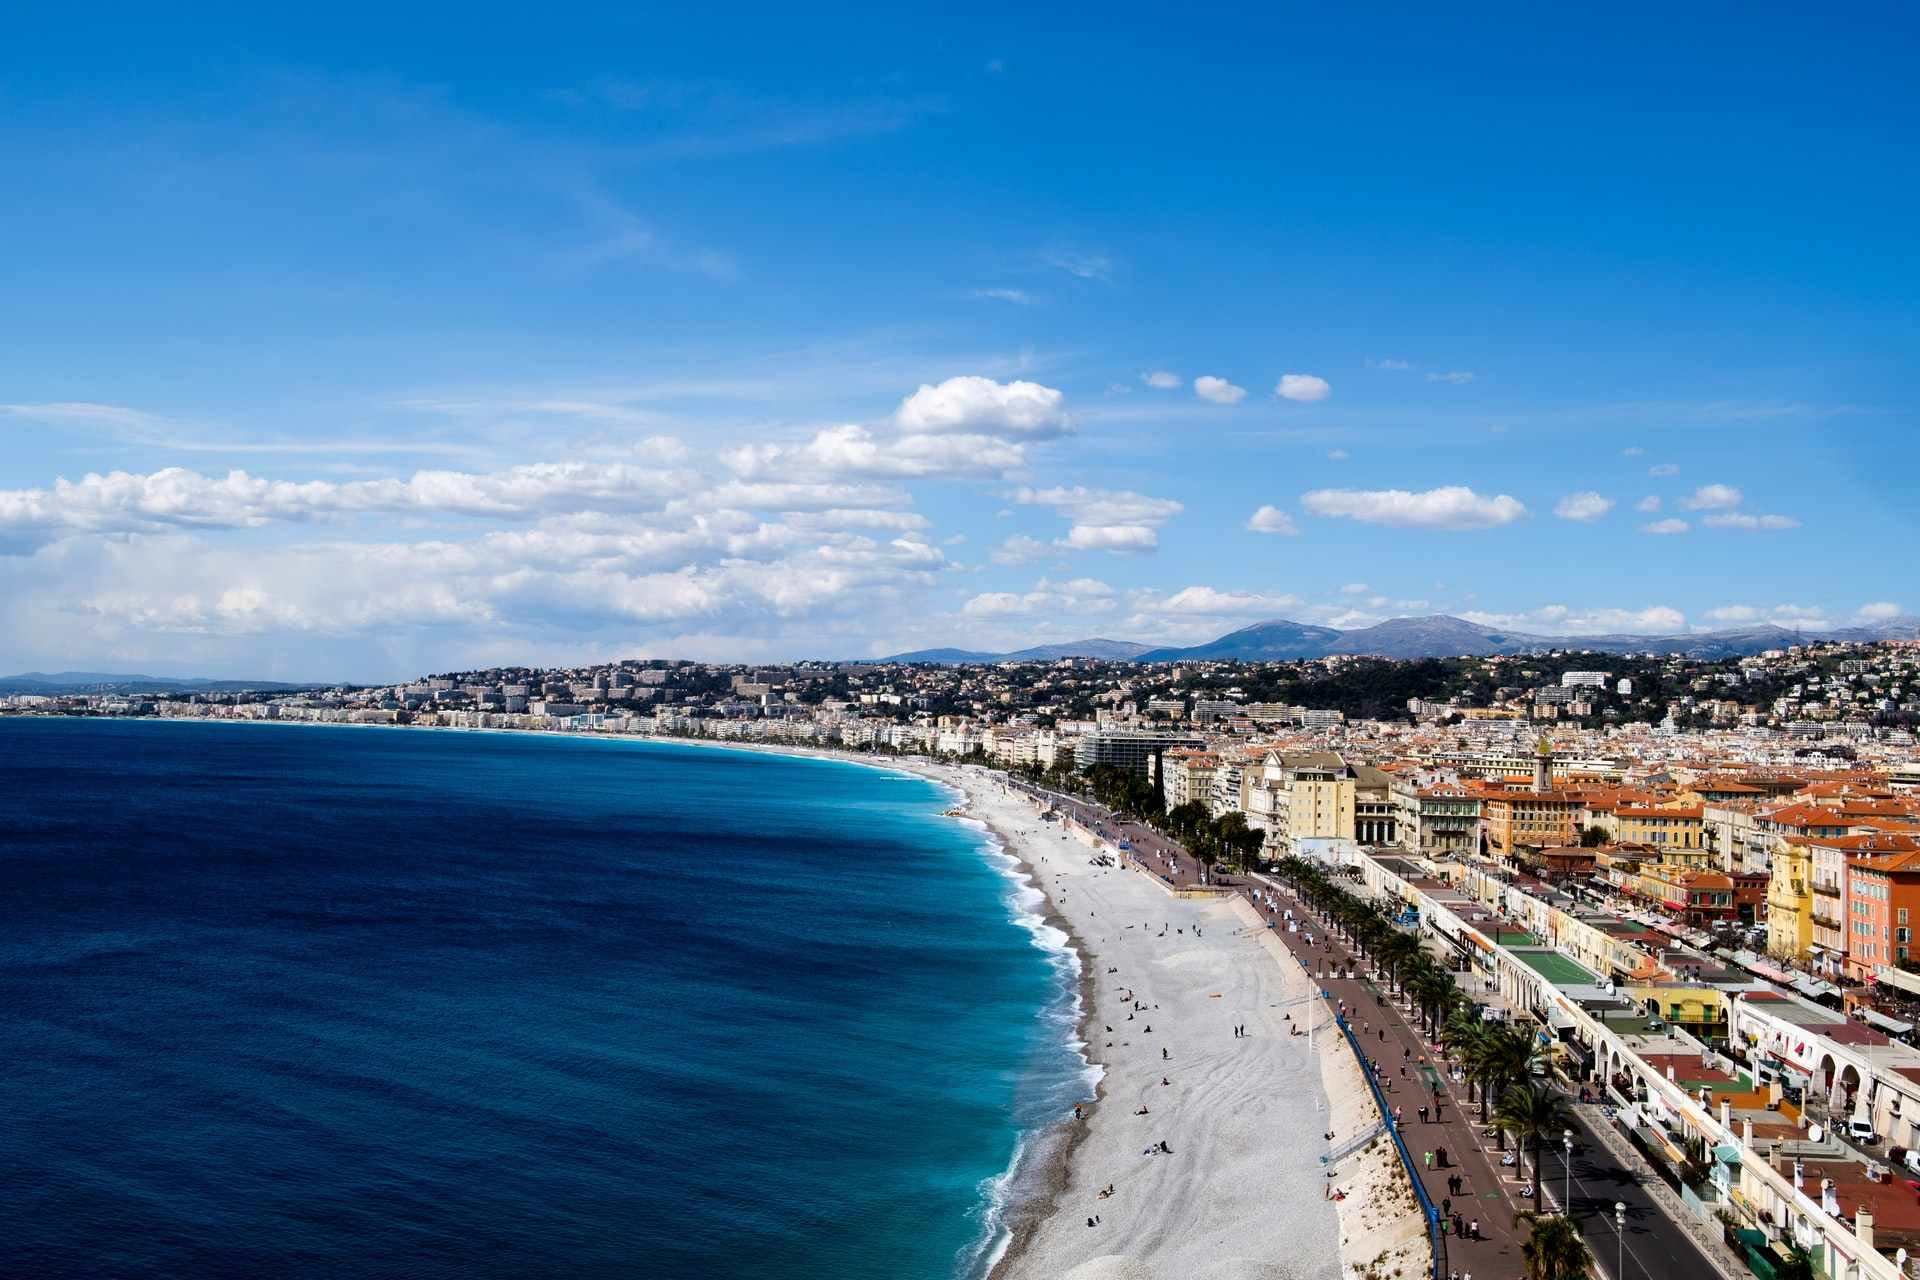 castle-hill-view-over-nice-city-beach-ocean-and-buildings-free-things-to-do-in-nice